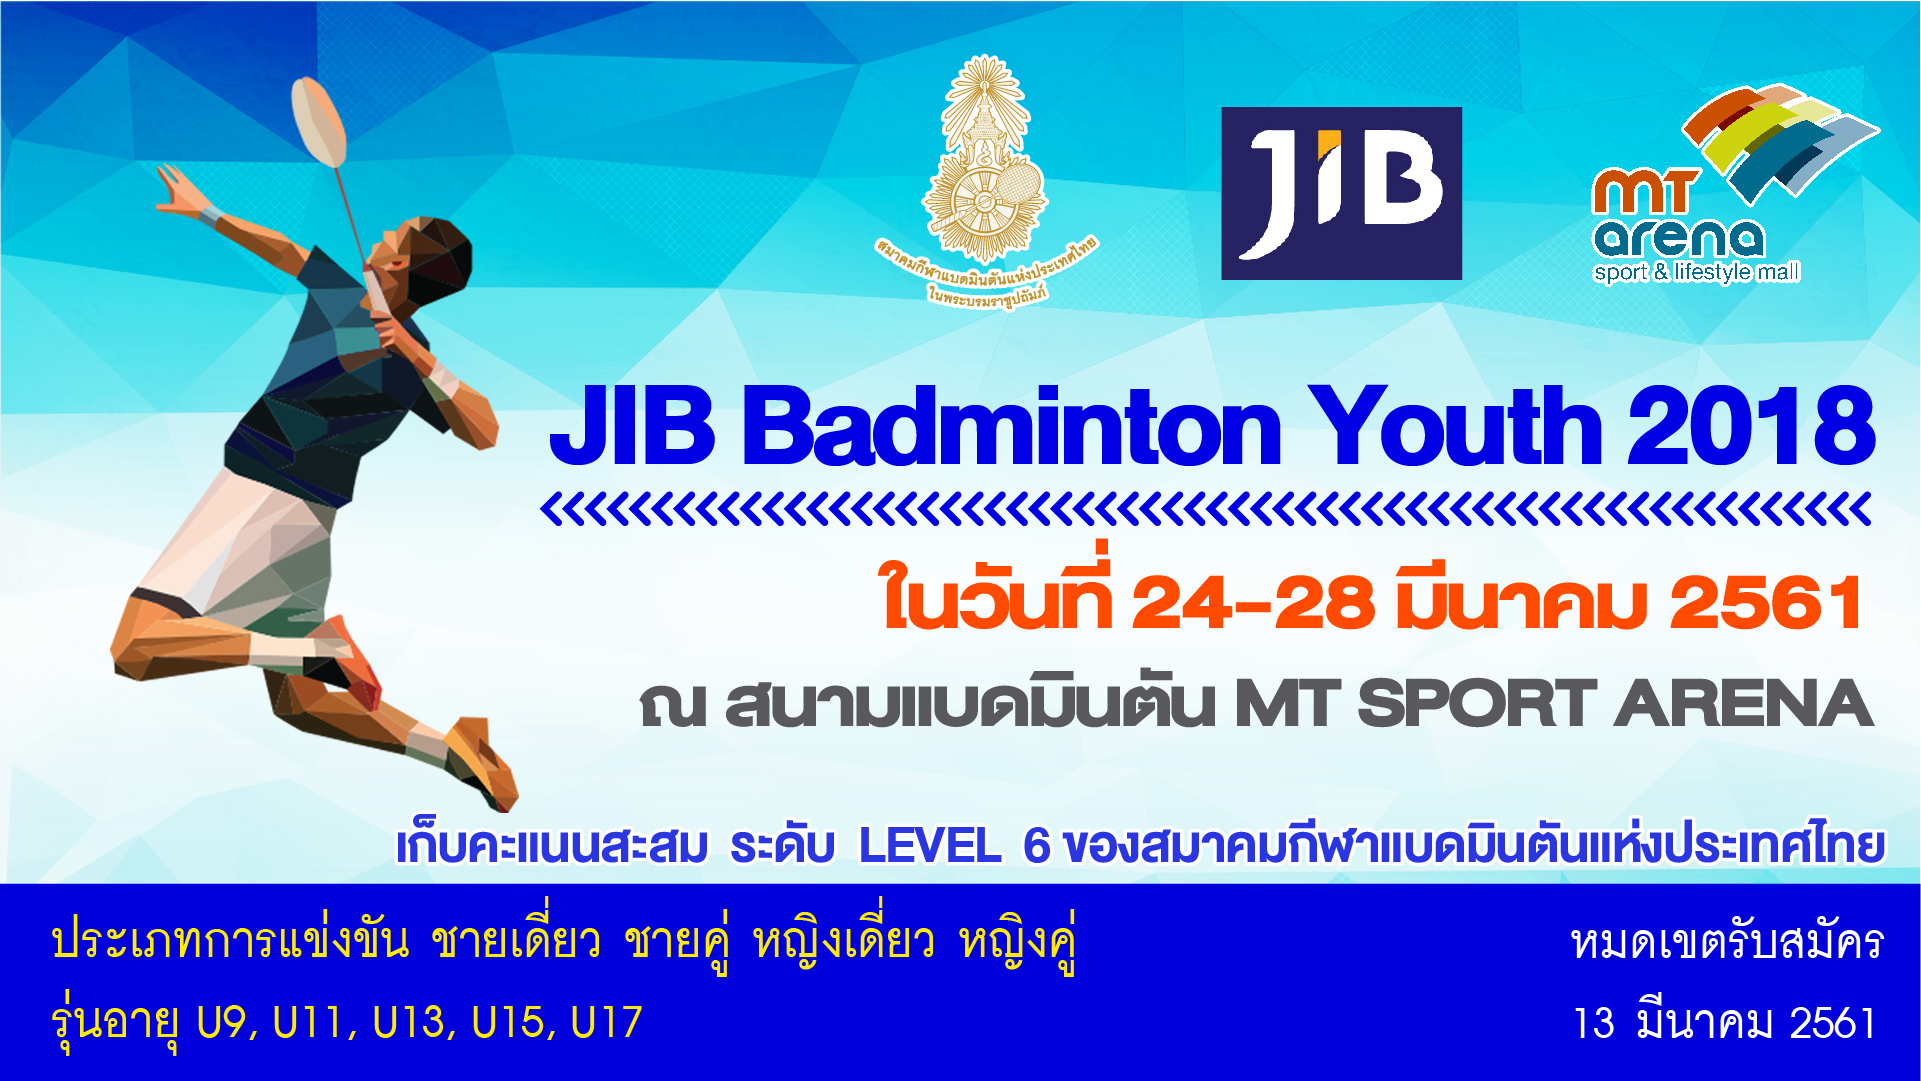 JIB BADMINTON  YOUTH  2018